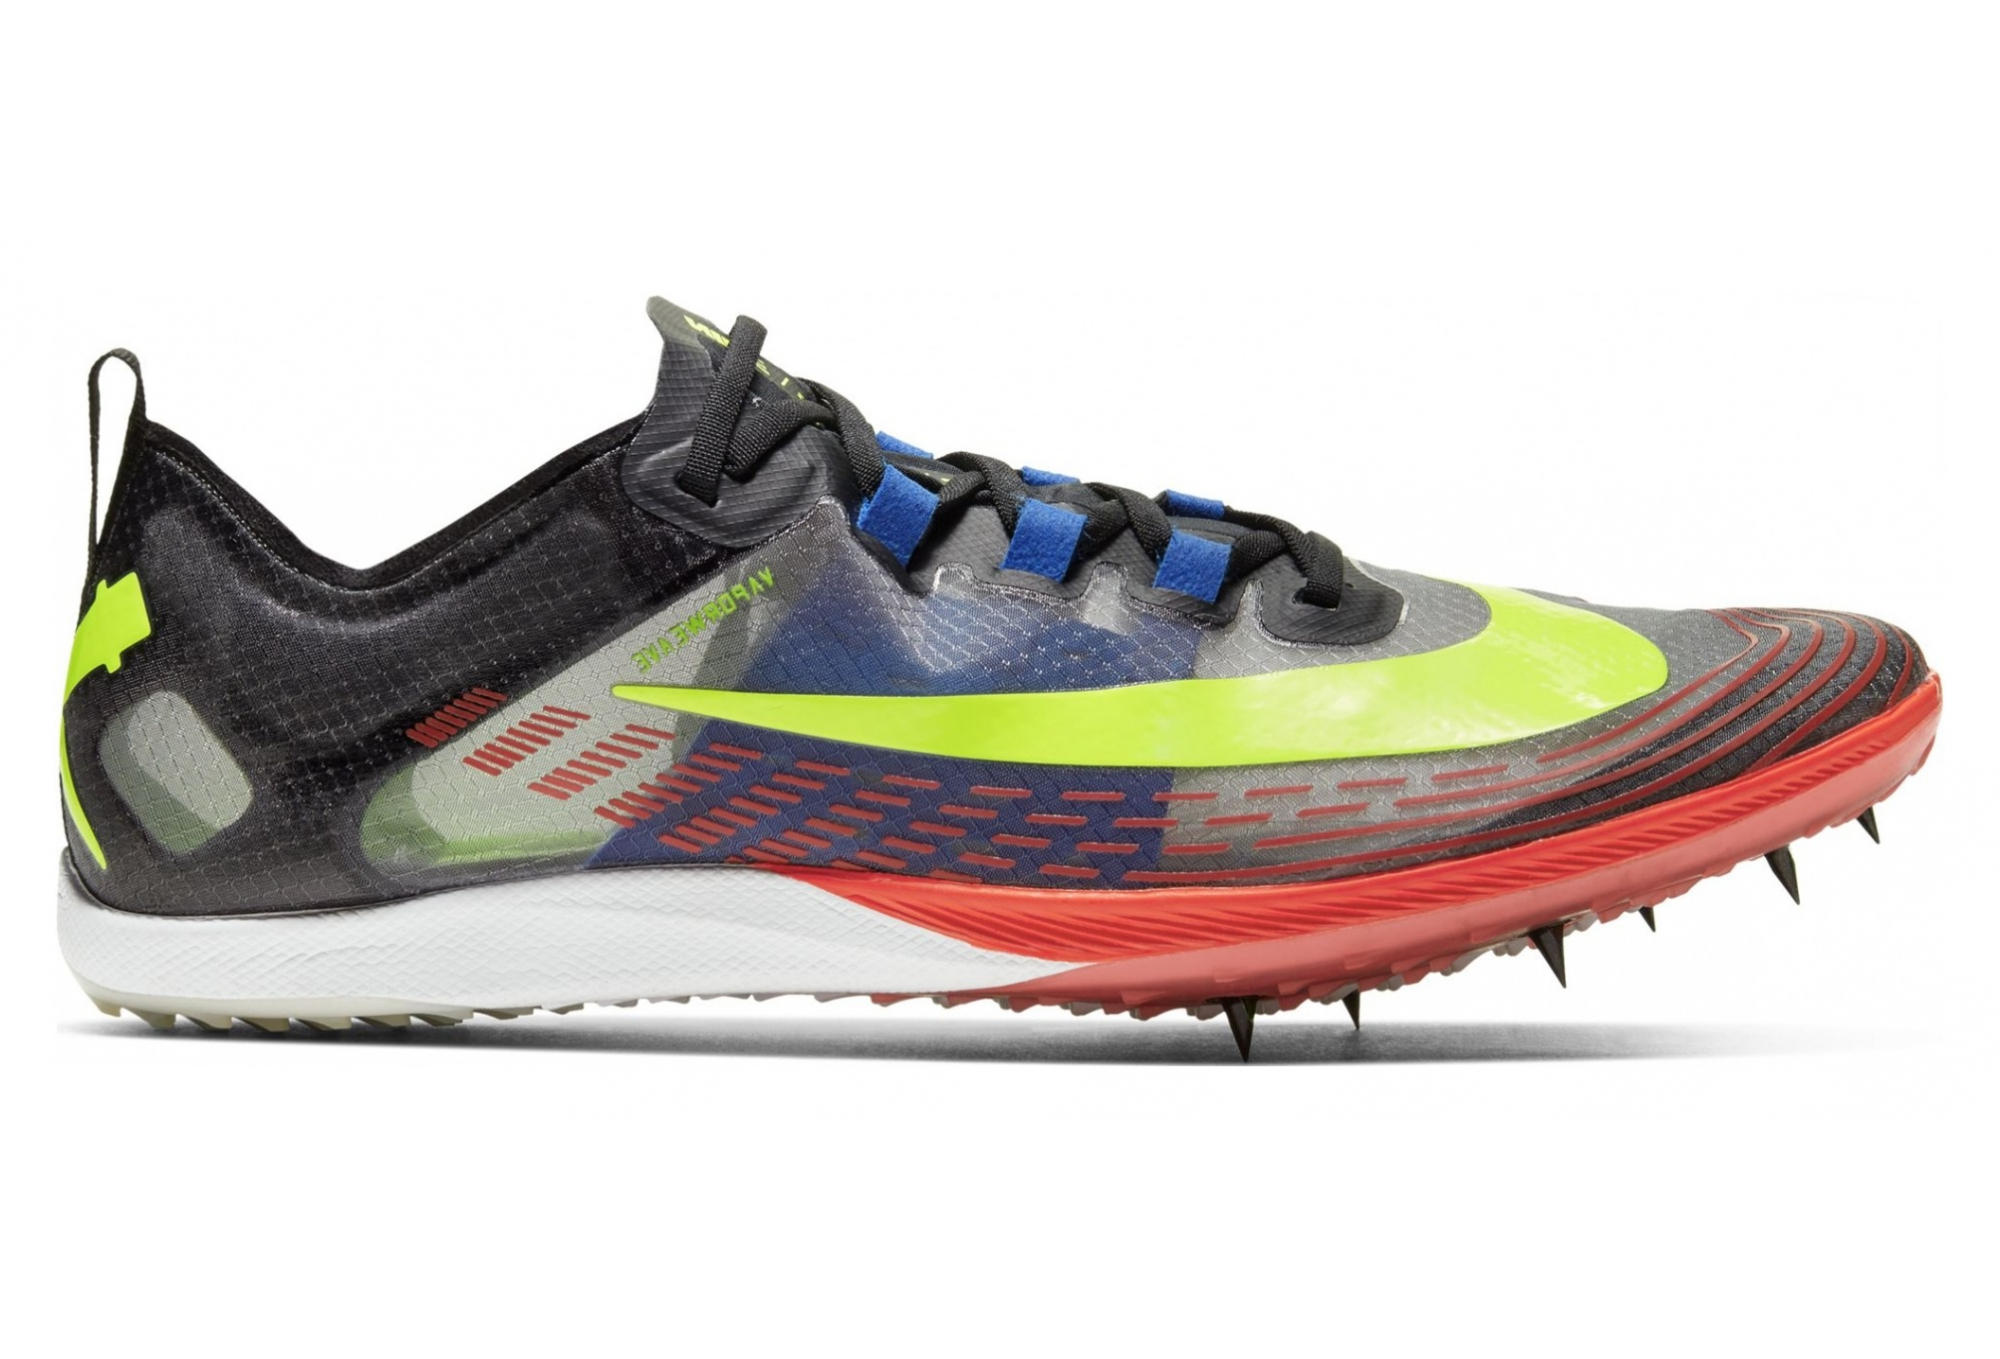 Pair of Cross Shoes Nike Zoom Victory 5 XC Black Multi-color Unisex